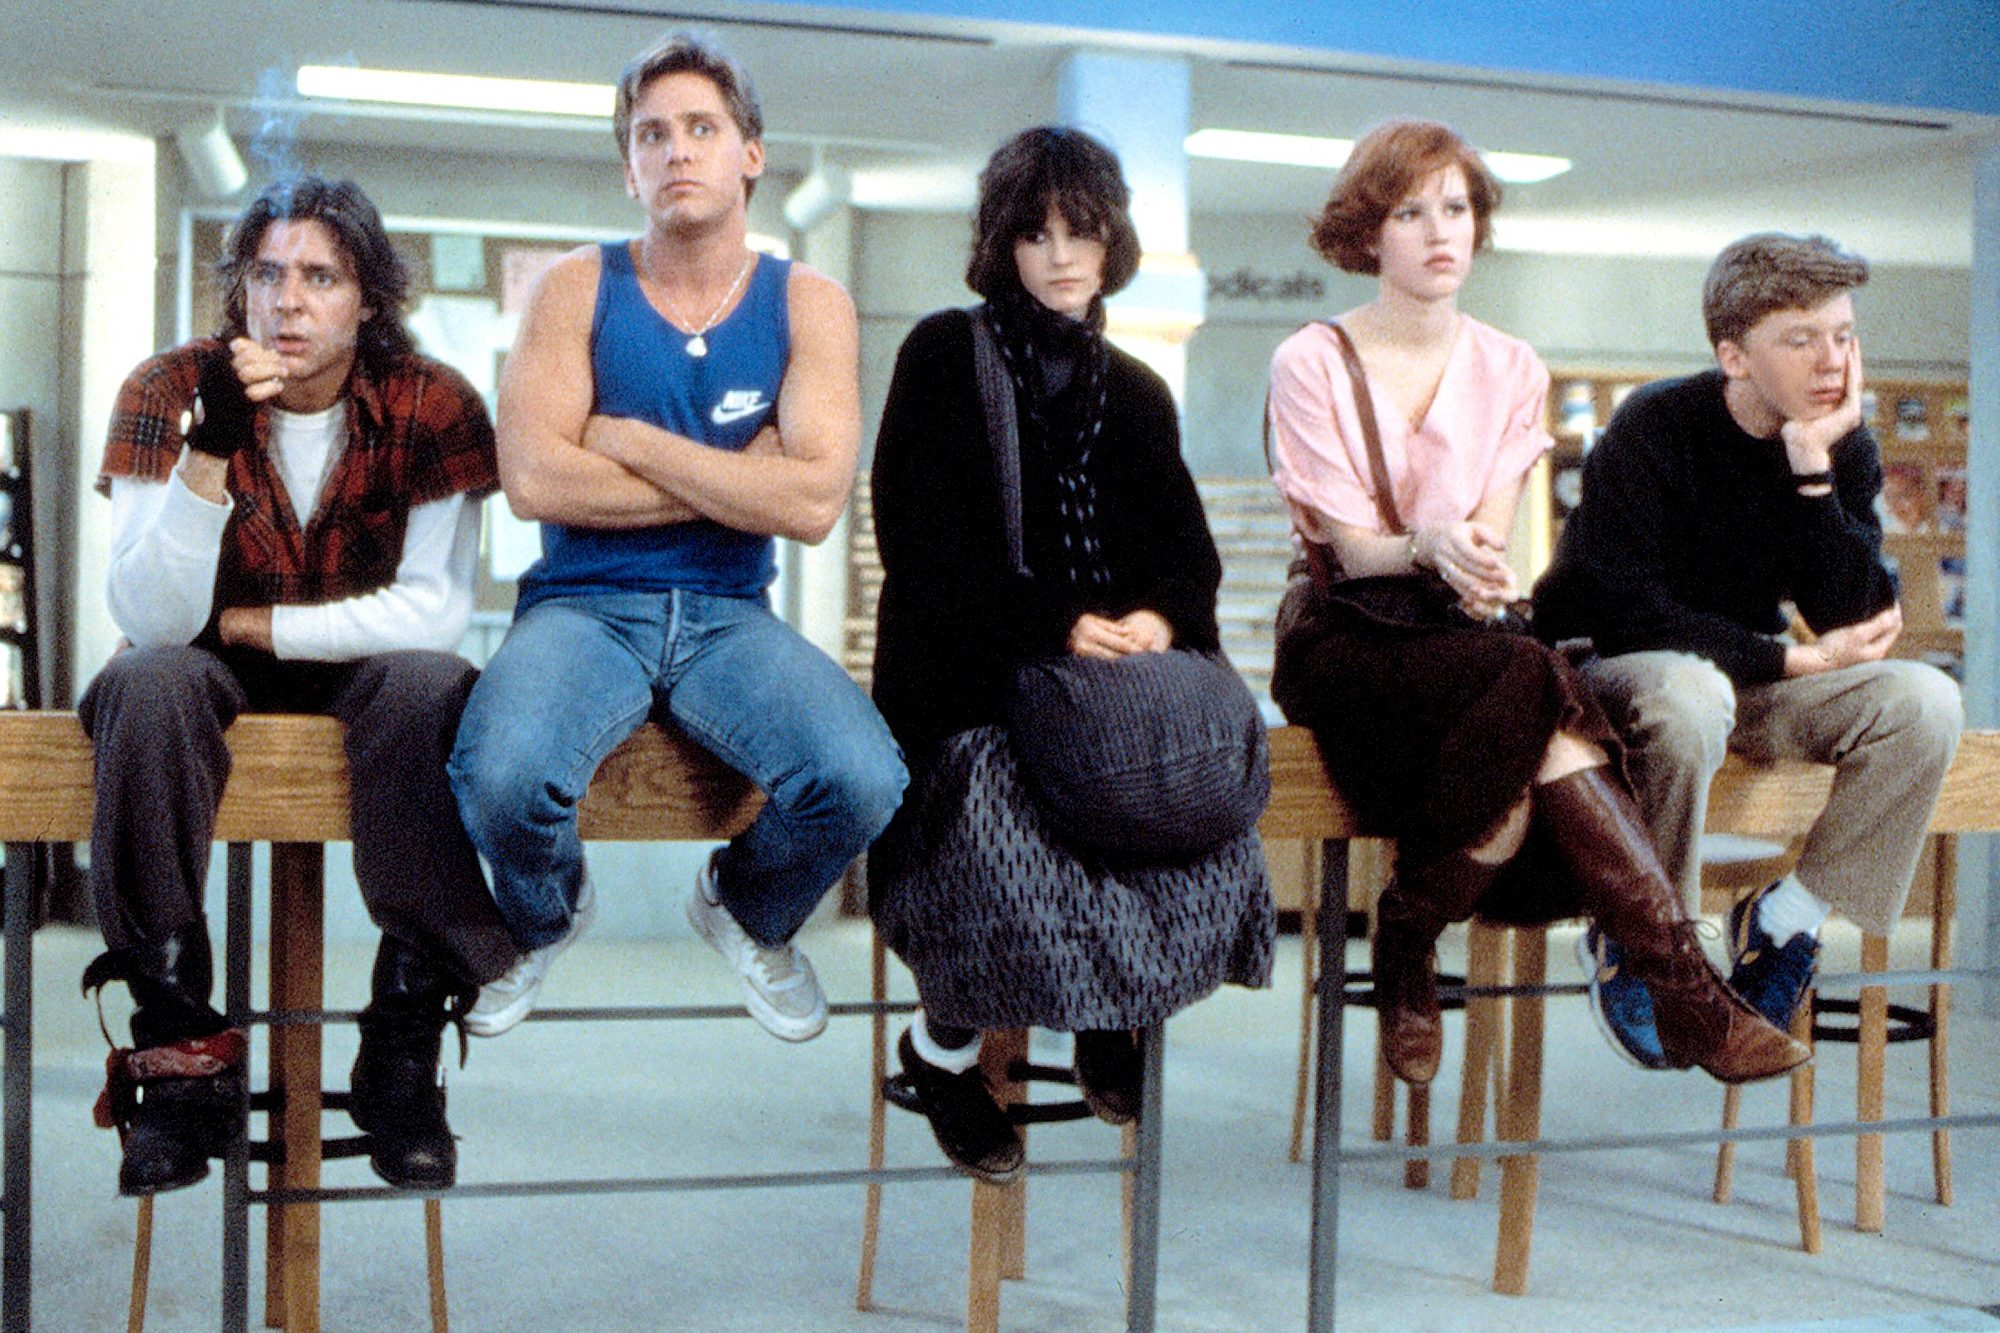 THE BREAKFAST CLUB, Judd Nelson, Emilio Estevez, Ally Sheedy, Molly Ringwald, Anthony Michael Hall,